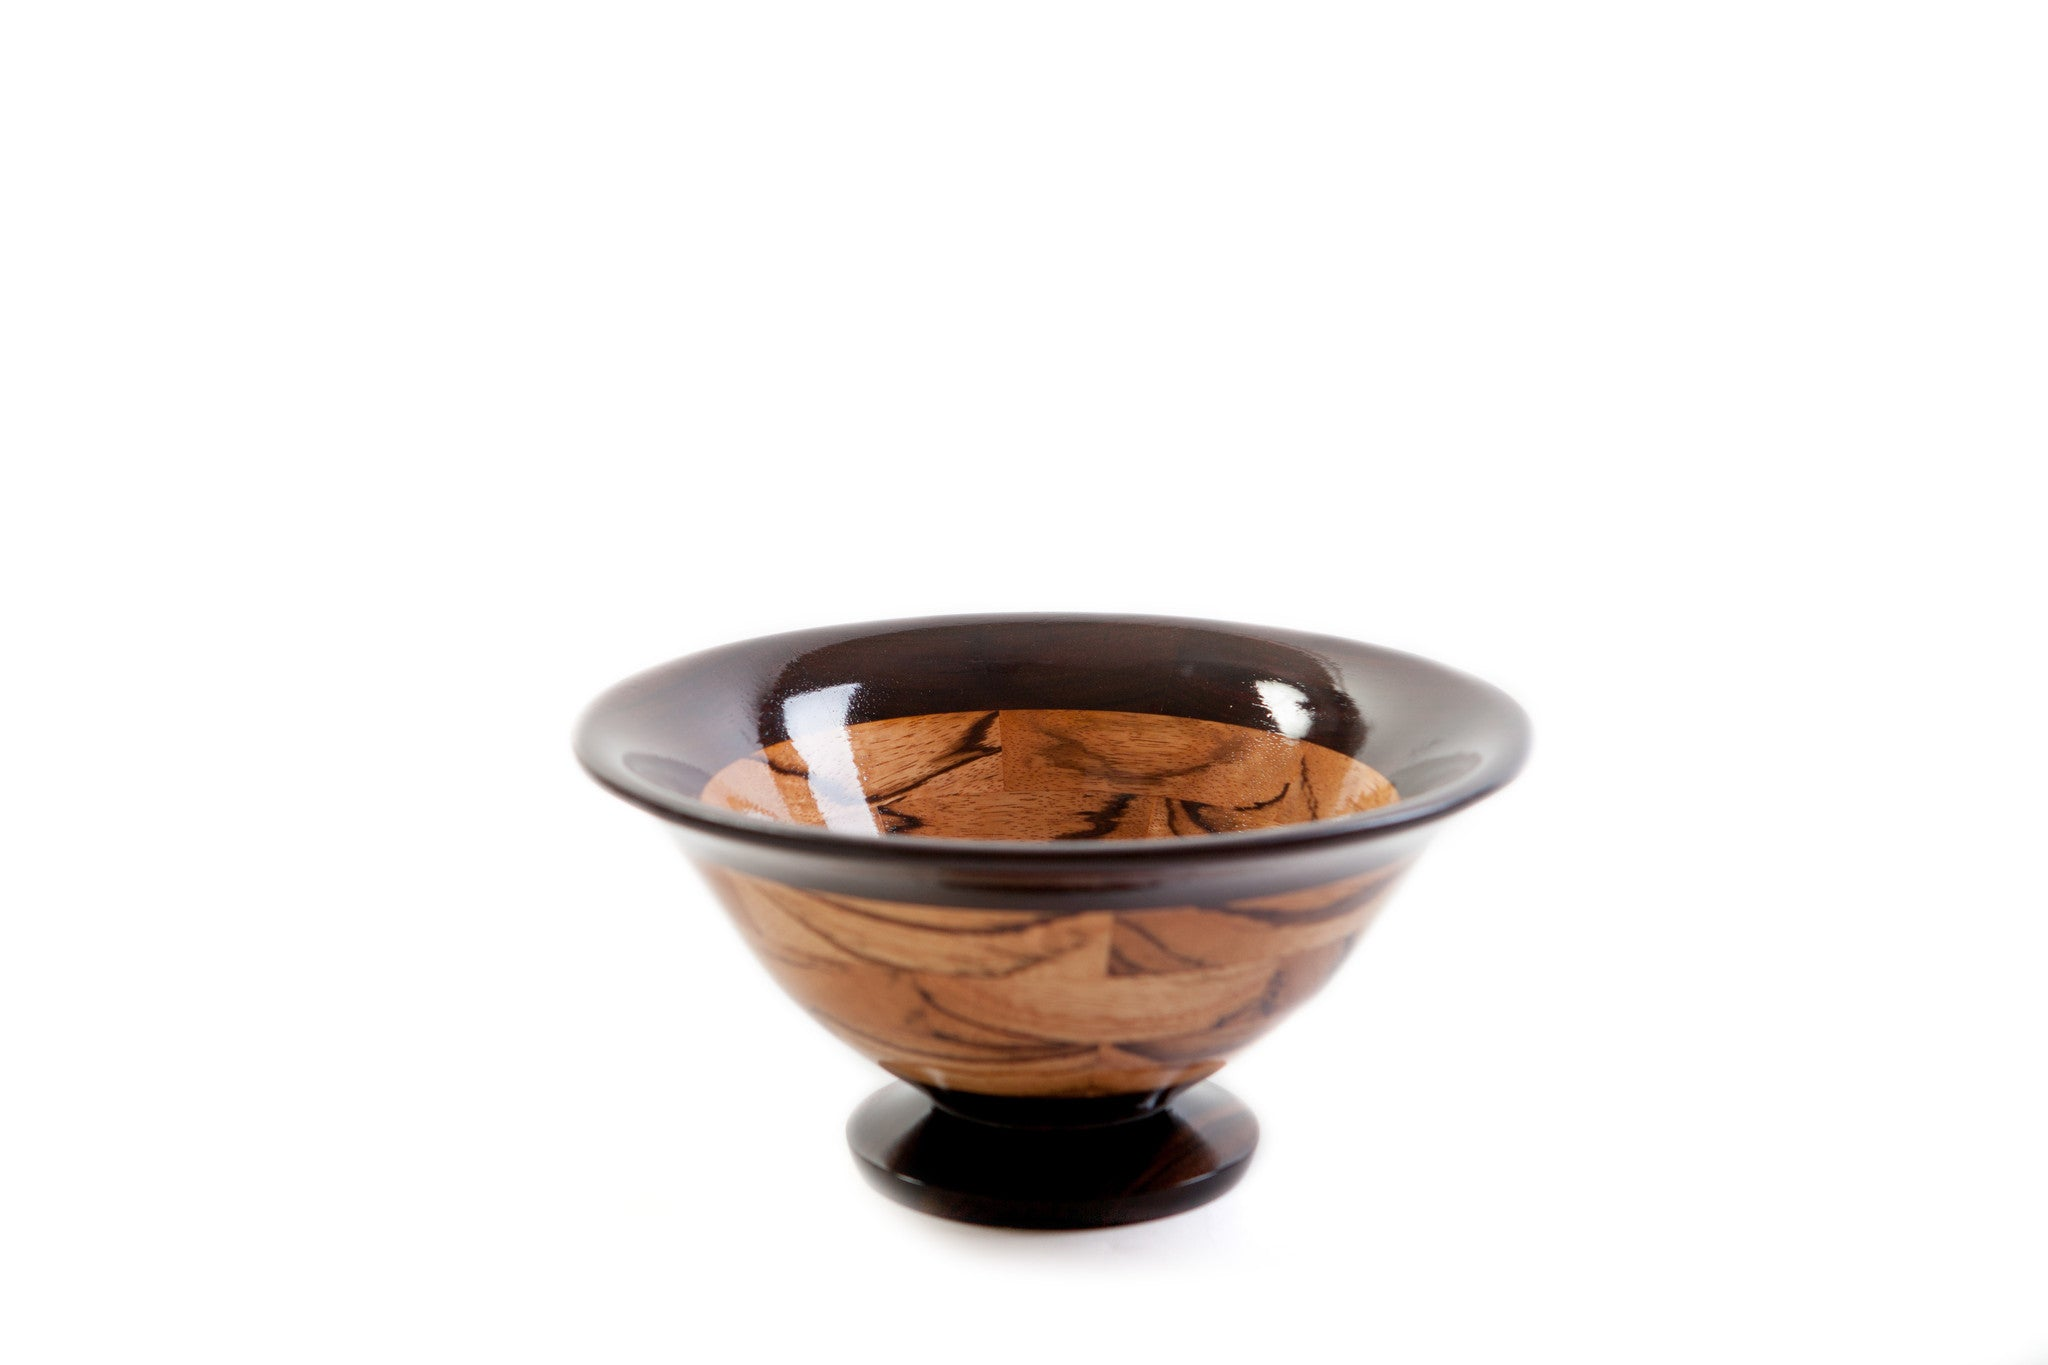 Richard Ruehle Segmented Zebrawood and Macassar Ebony Wood Bowl